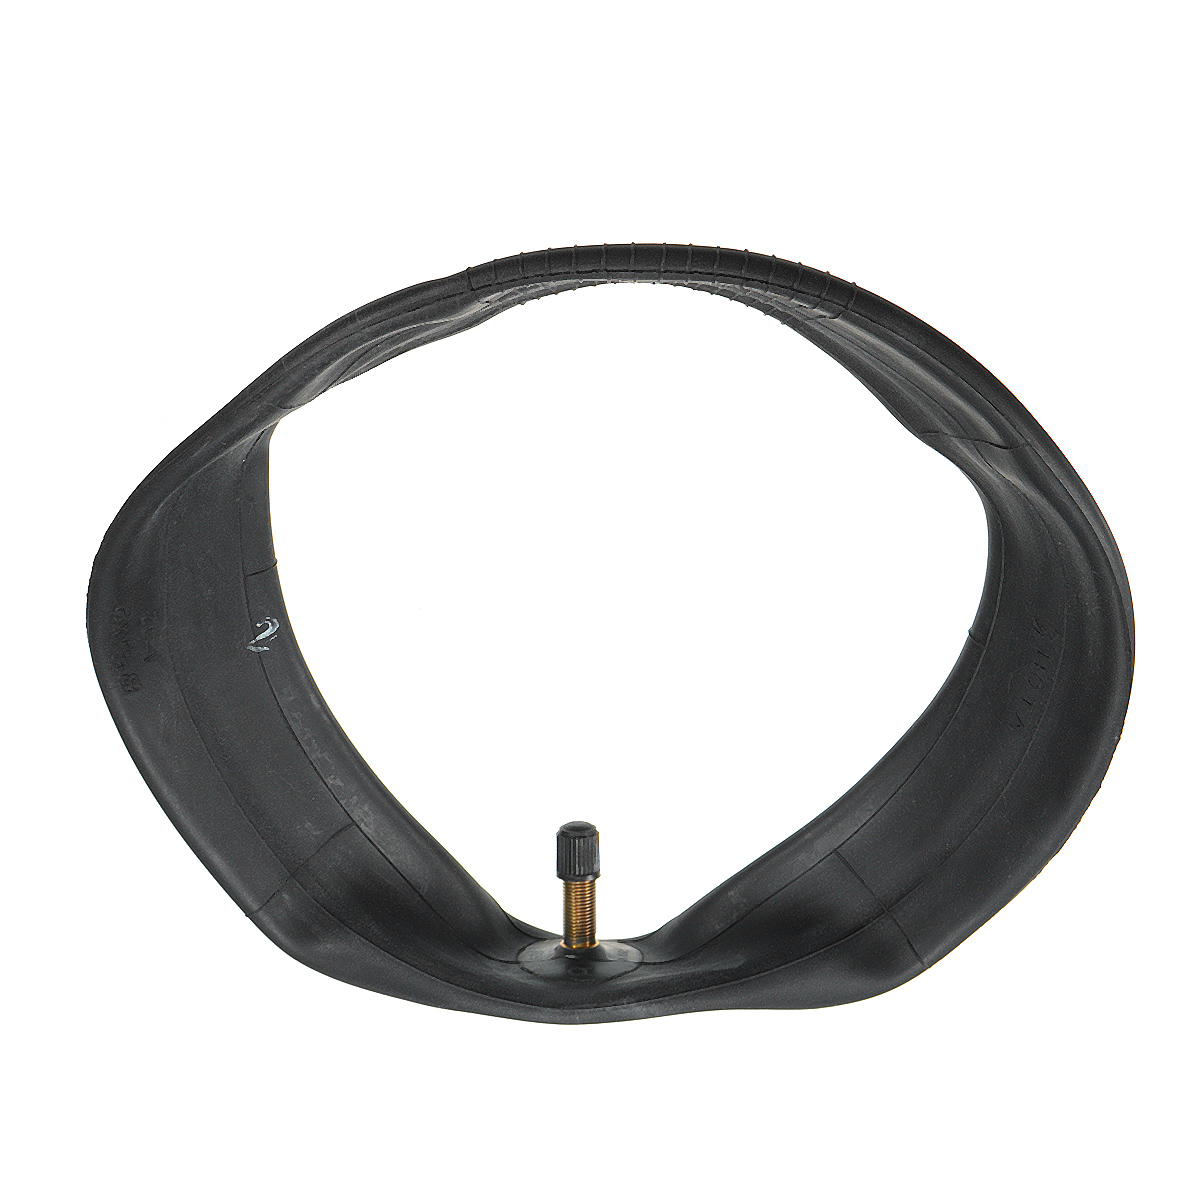 8 1/2X2 Thickened Pneumatic Inner Tube For Xiaomi Mijia M365 Electric Scooter